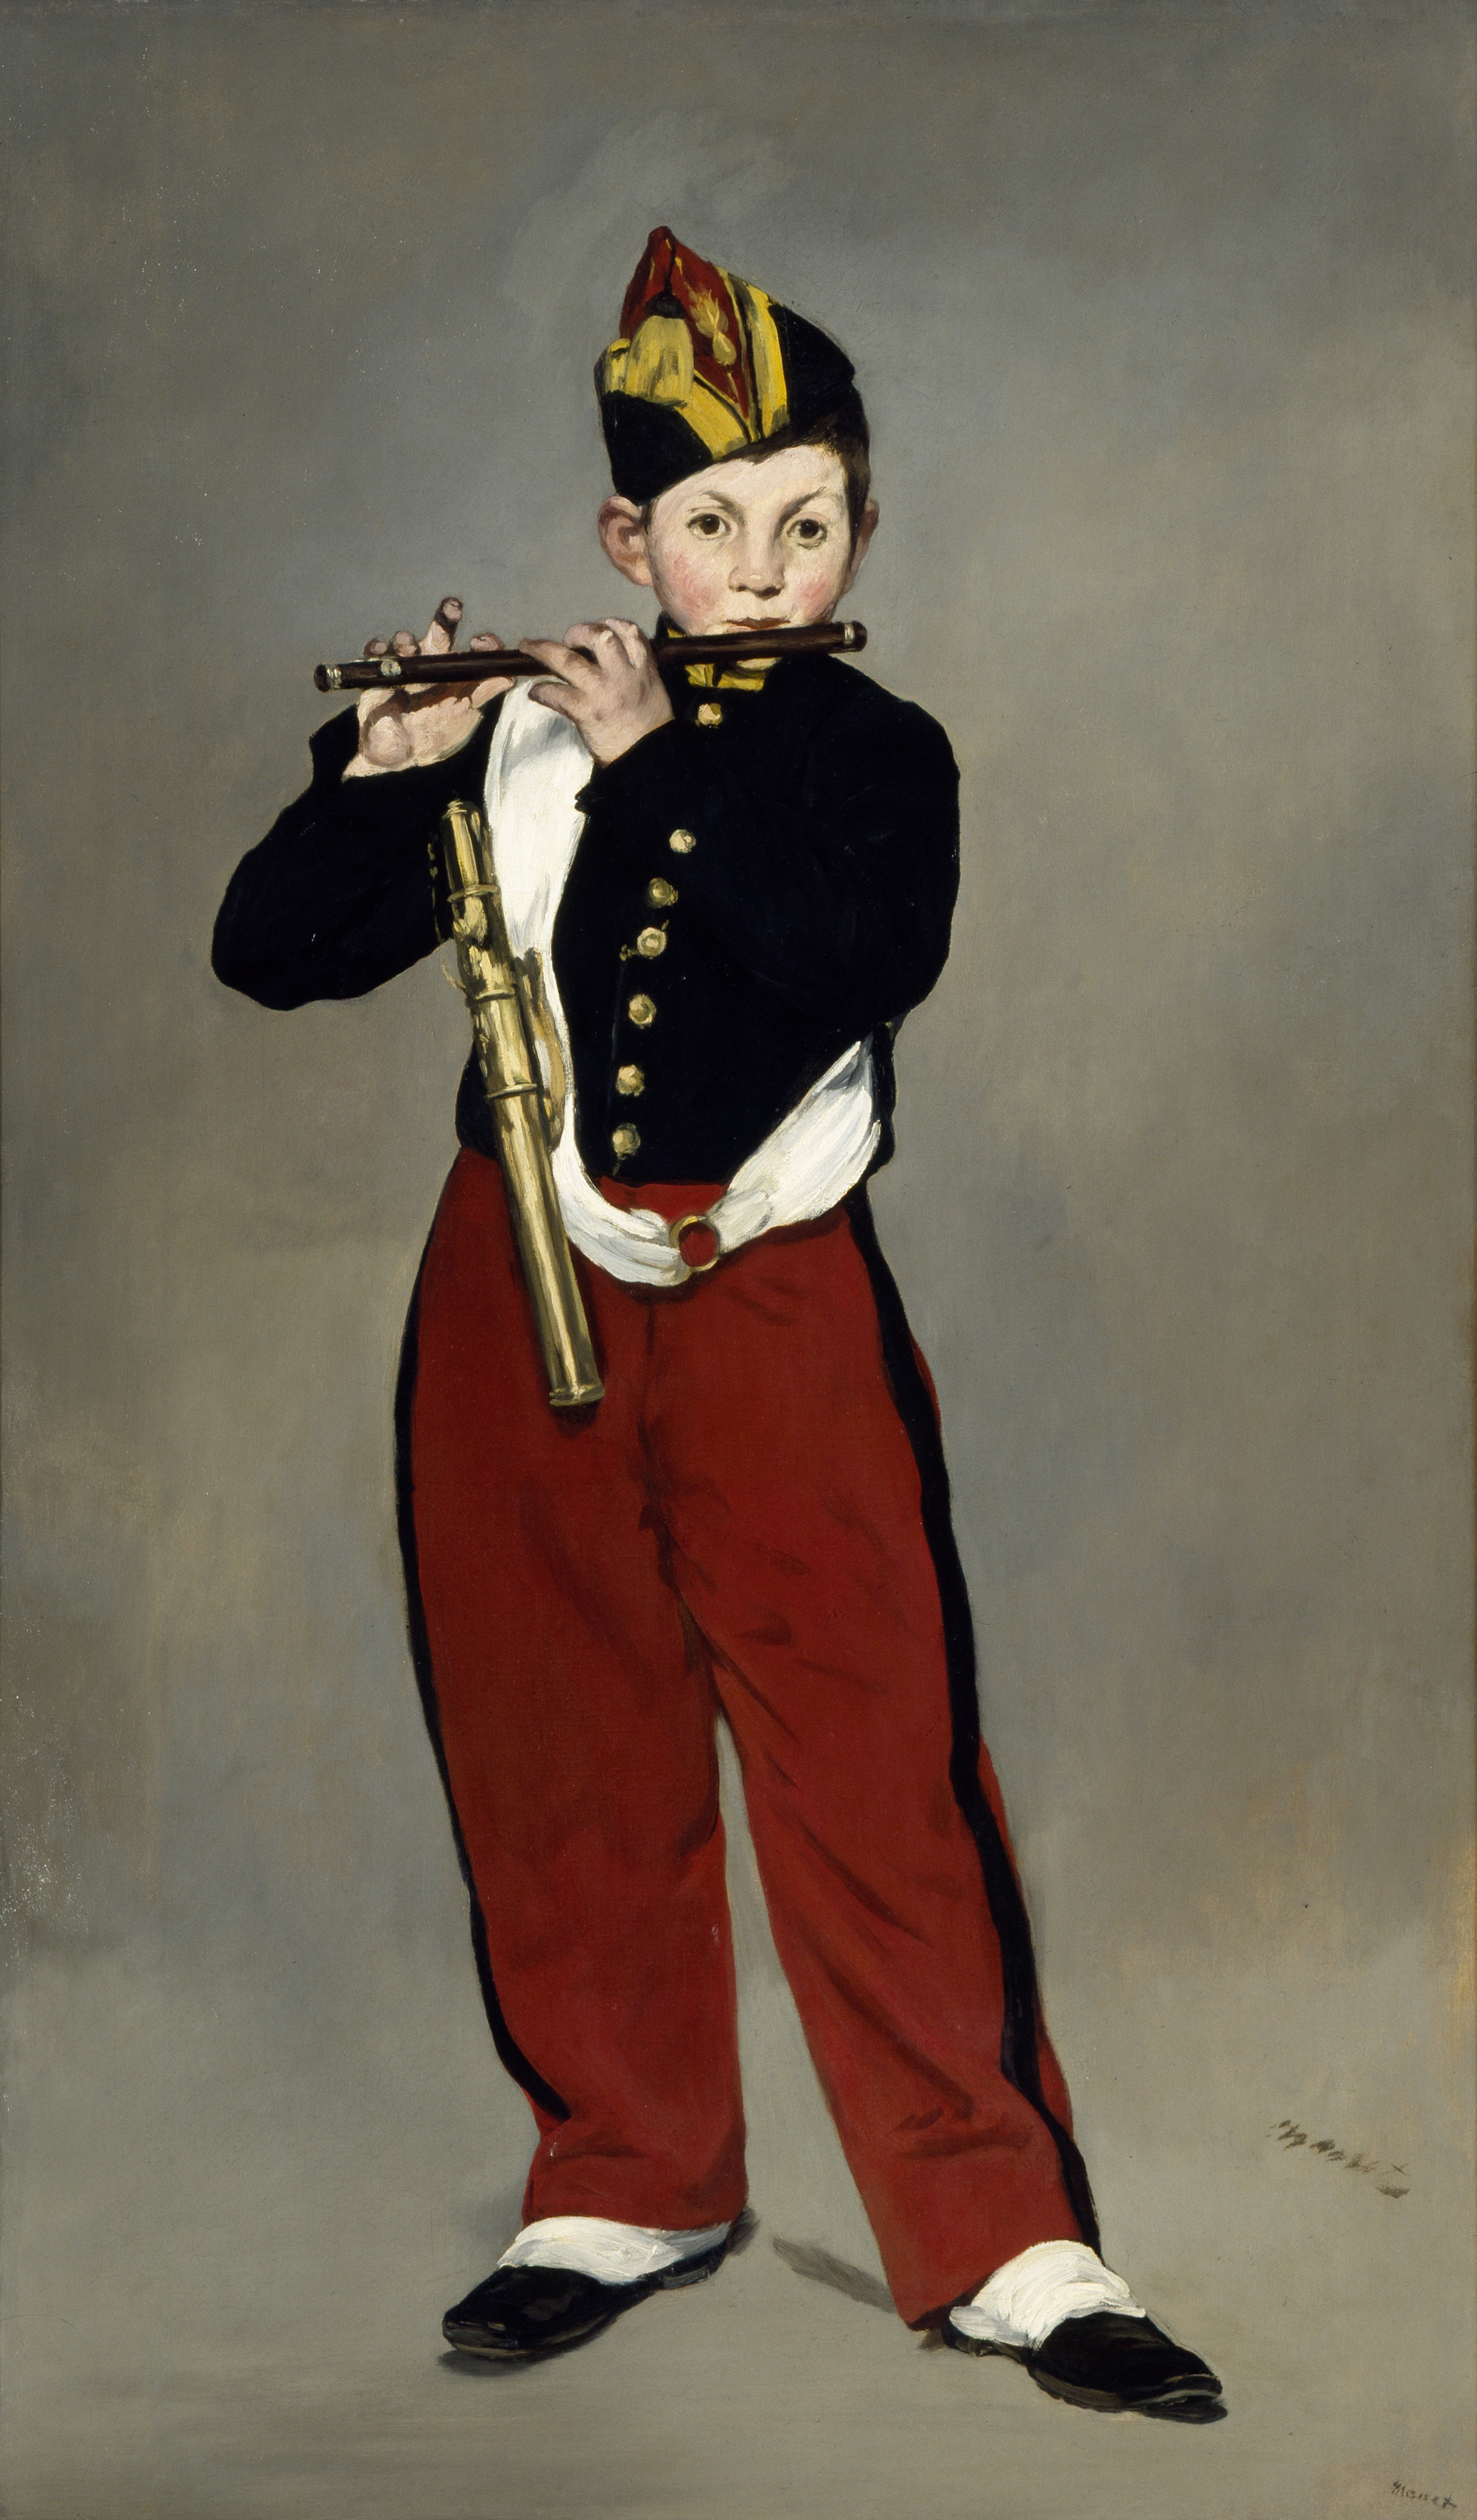 Manet%2C_Edouard_-_Young_Flautist%2C_or_The_Fifer%2C_1866_%282%29.jpg